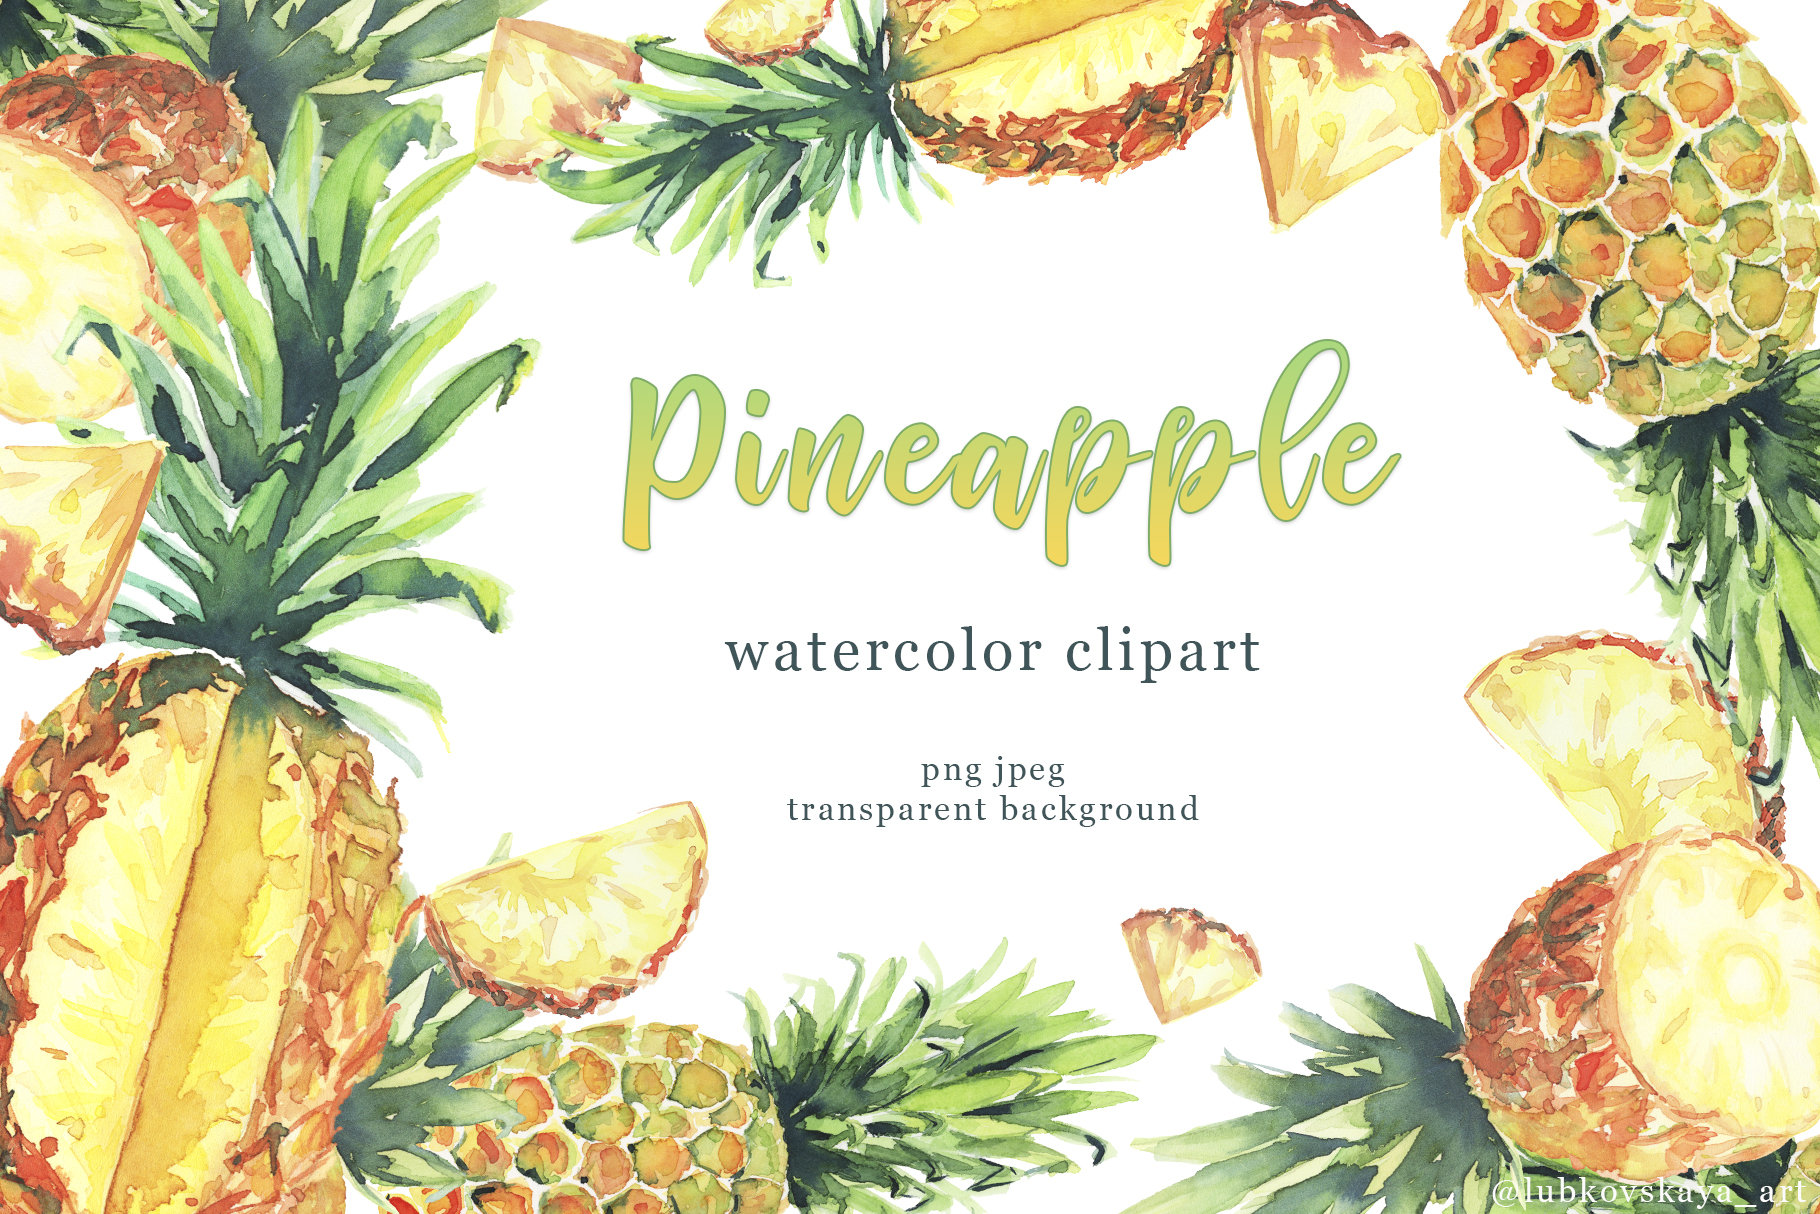 Pineapple clipart juicy. Watercolor tropical fruits ripe